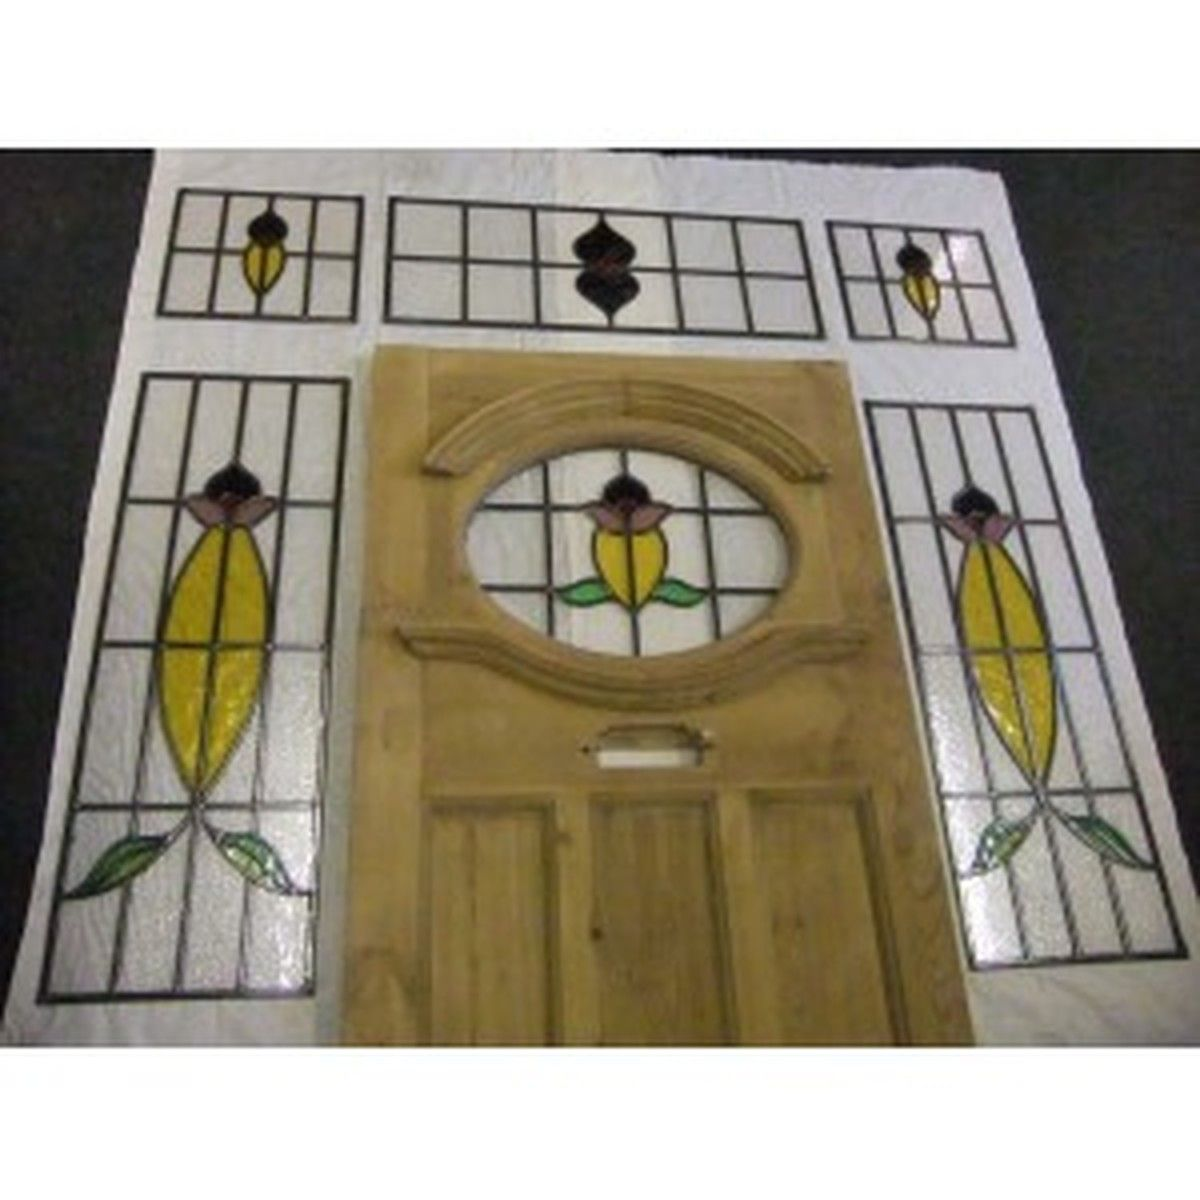 Doors And Windows Edwardian Stained Glass Exterior Door With Surrounding Windows Cheshire Exterior Doors With Glass Stained Glass Door Exterior Front Doors